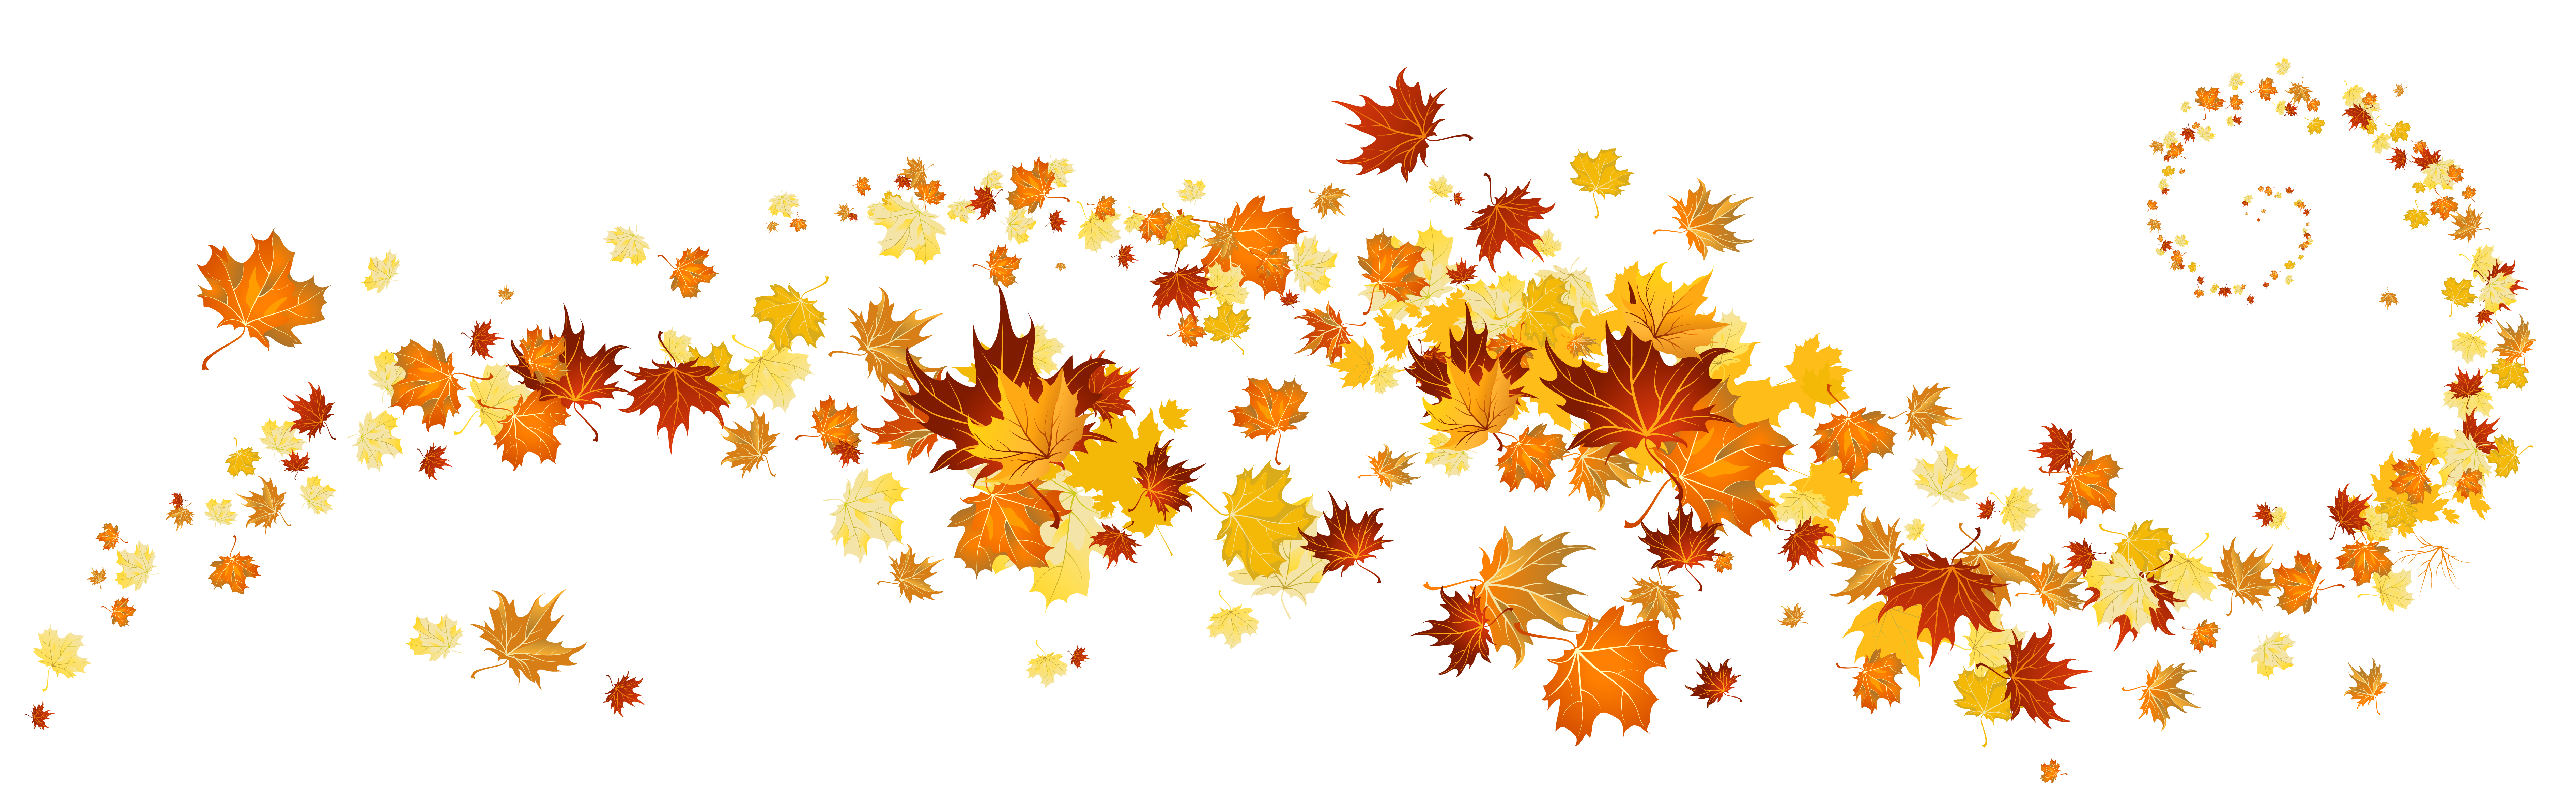 Festival clipart autumn leaf Drawings #7 clipart Download clipart